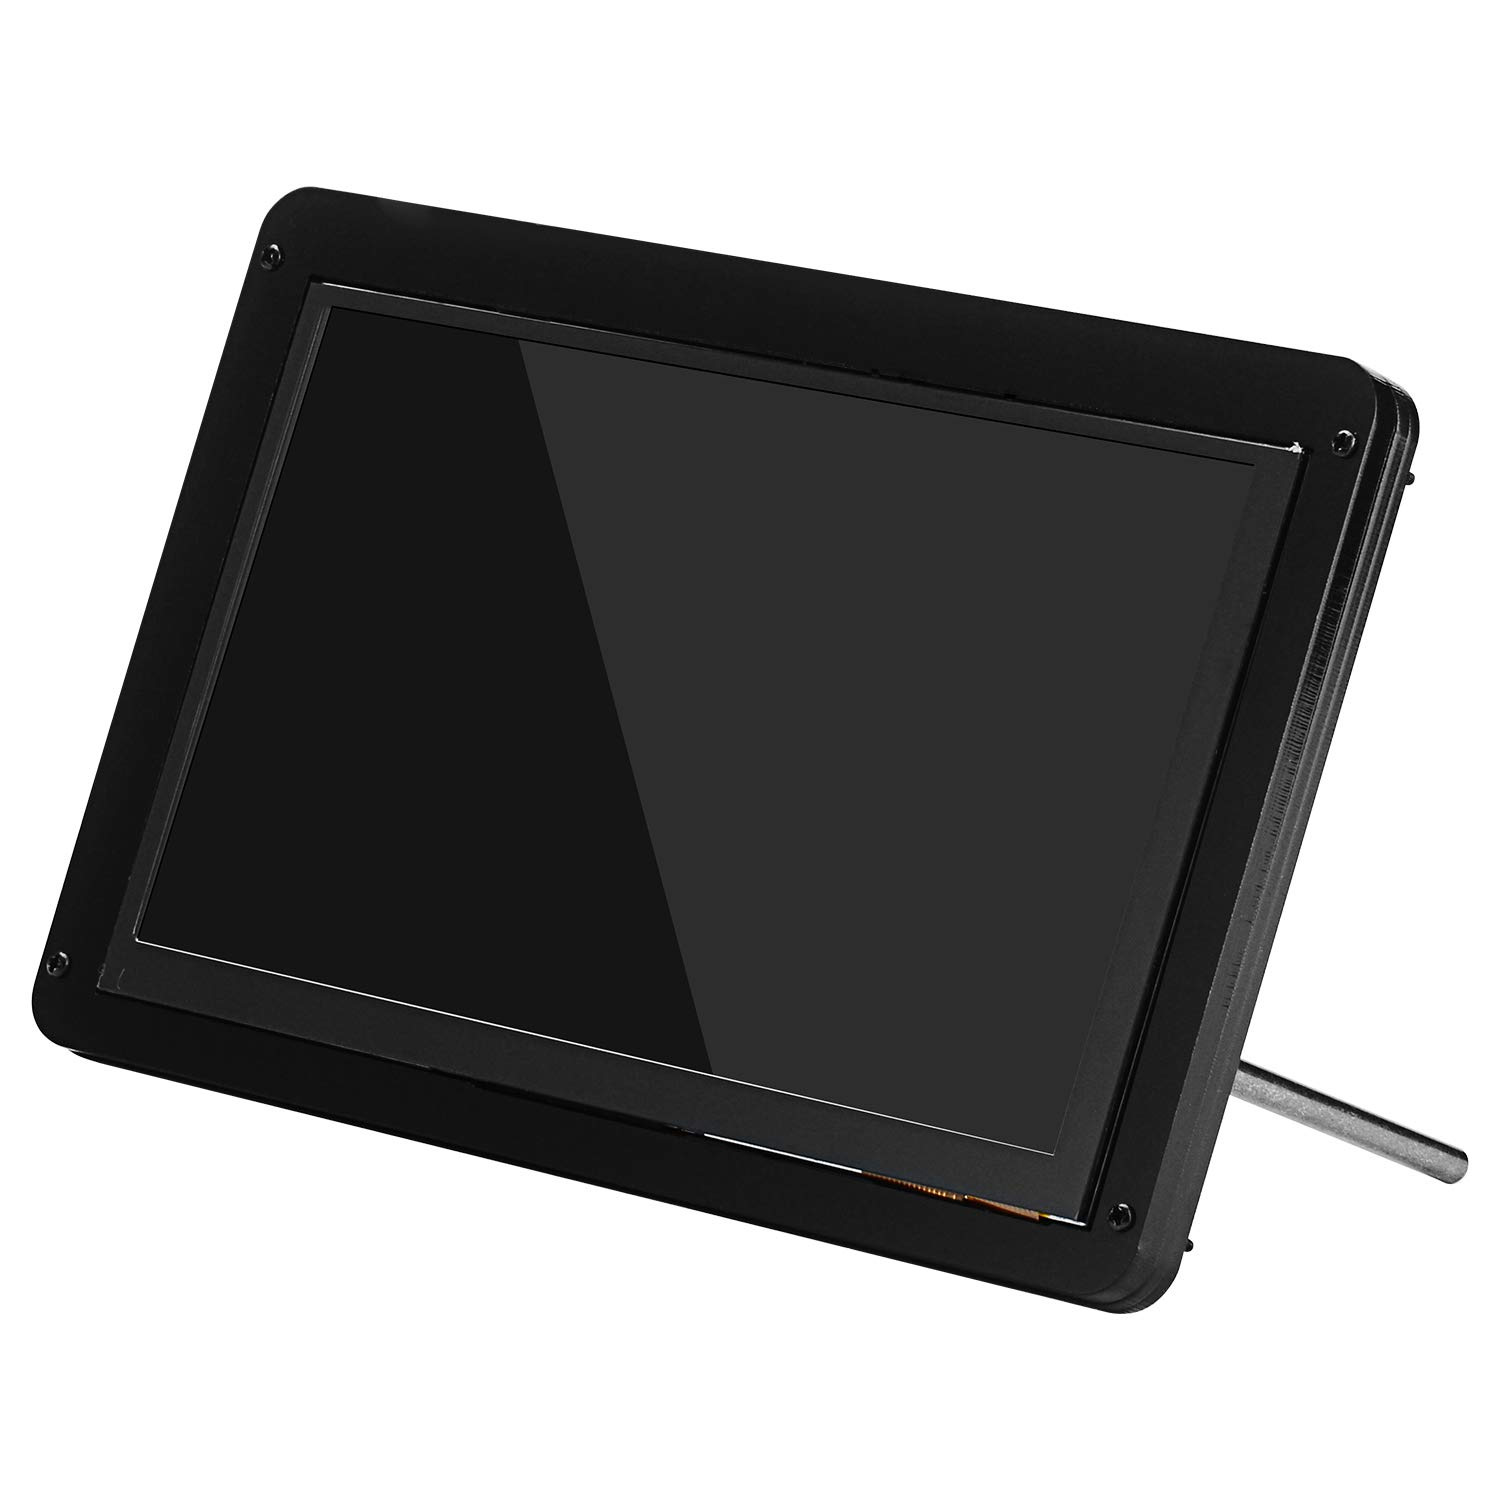 GeeekPi 7 Inch LCD Display Screen Case Acrylic Bracket Holder Cover for 7 Inch 1024x600 Capacitive Touch Screen LCD Display HDMI Monitor DIY Kit